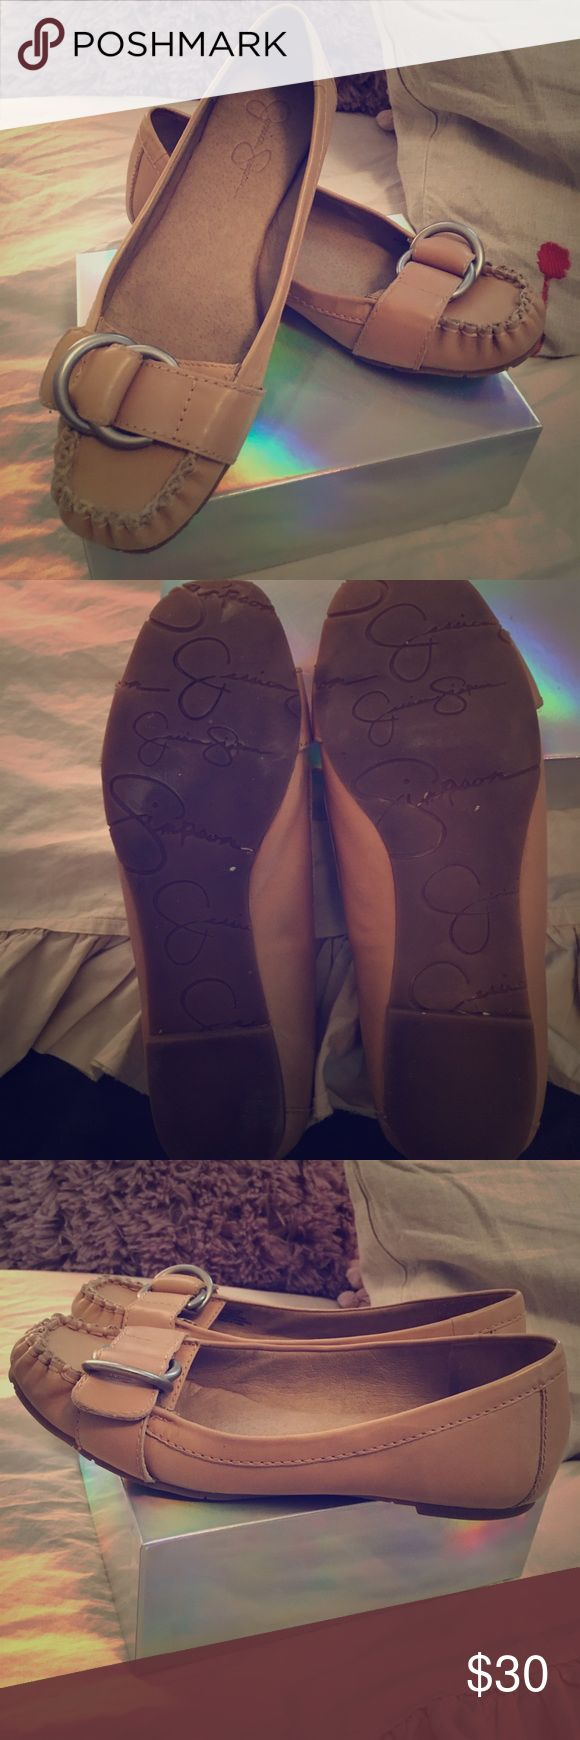 Jessica Simpson Flats Excellent used condition beige Jessica Simpson flats only worn a few times! Jessica Simpson Shoes Flats & Loafers